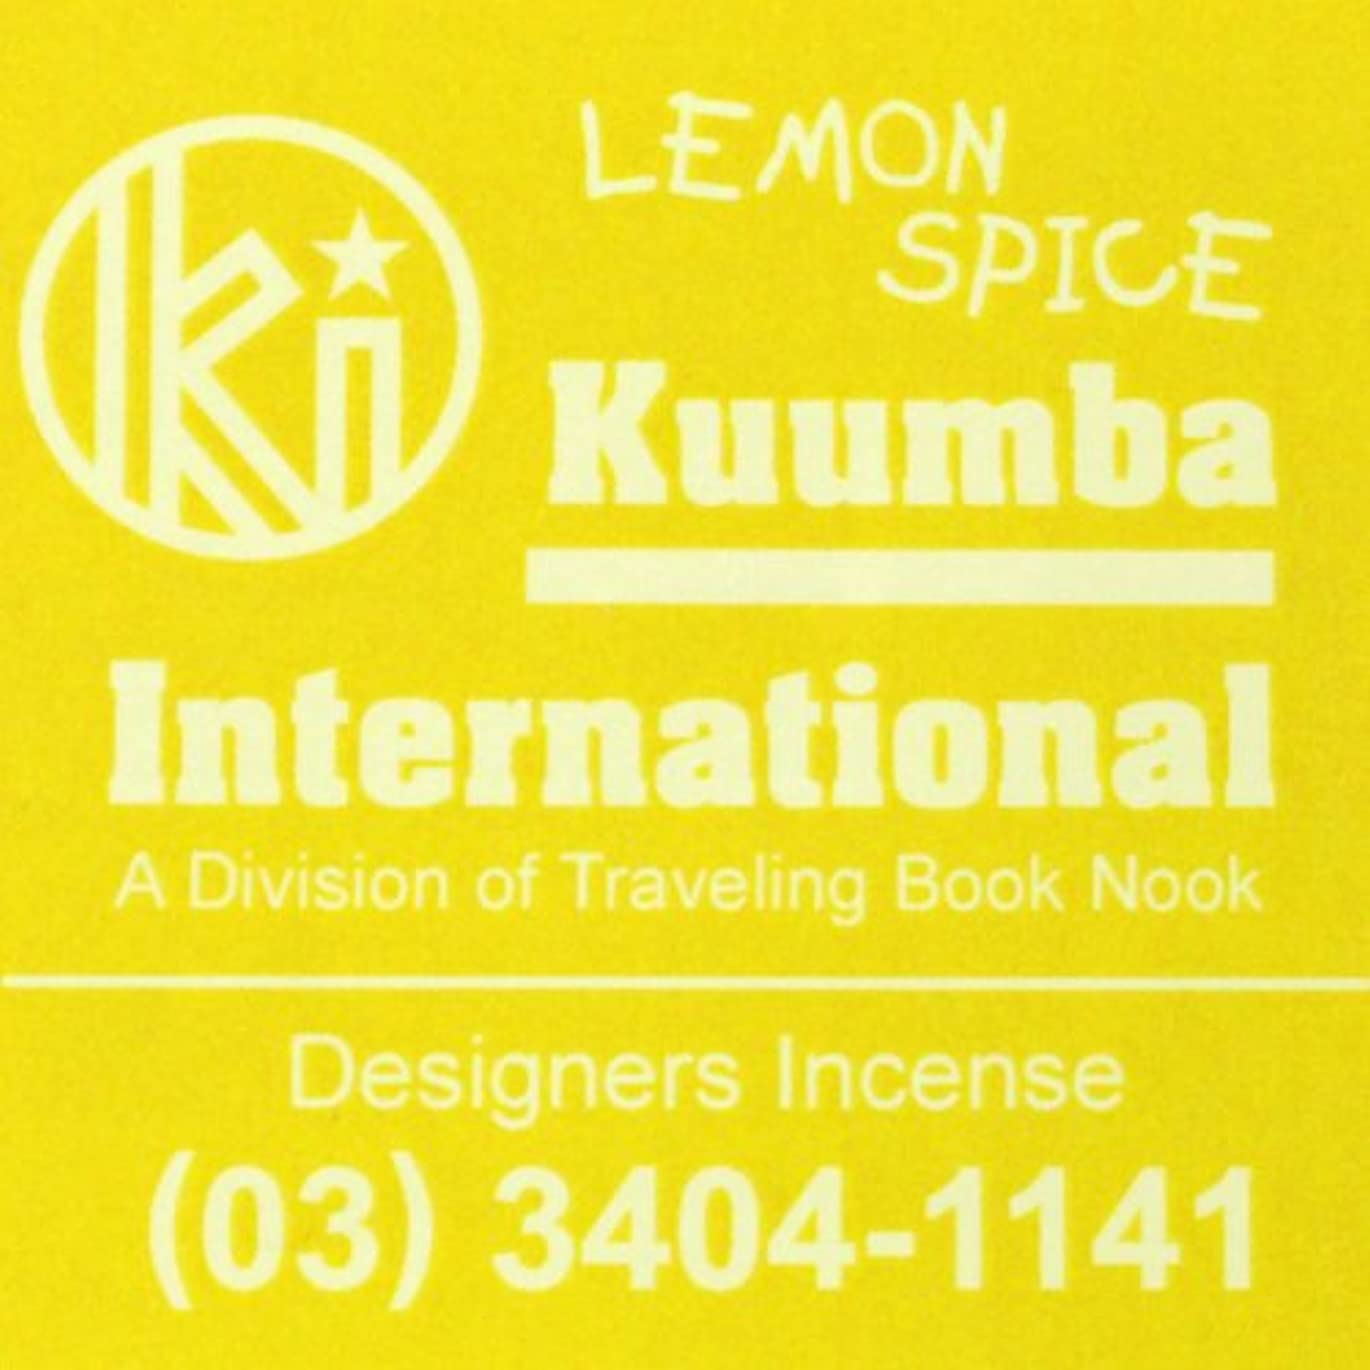 不良慣習立法(クンバ) KUUMBA『incense』(LEMON SPICE) (Regular size)